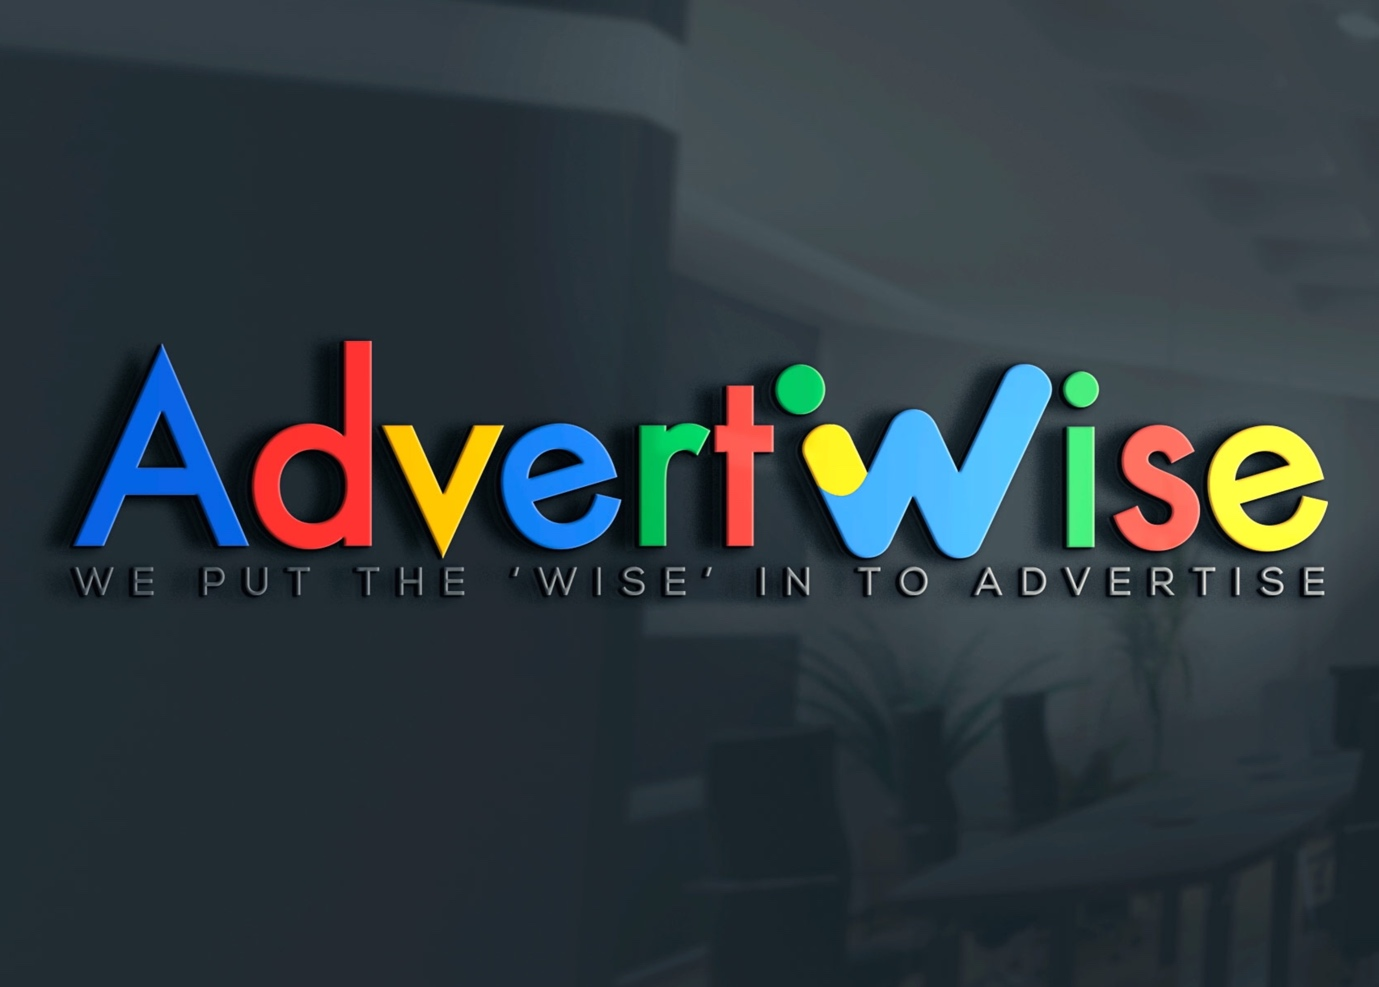 Advertwise